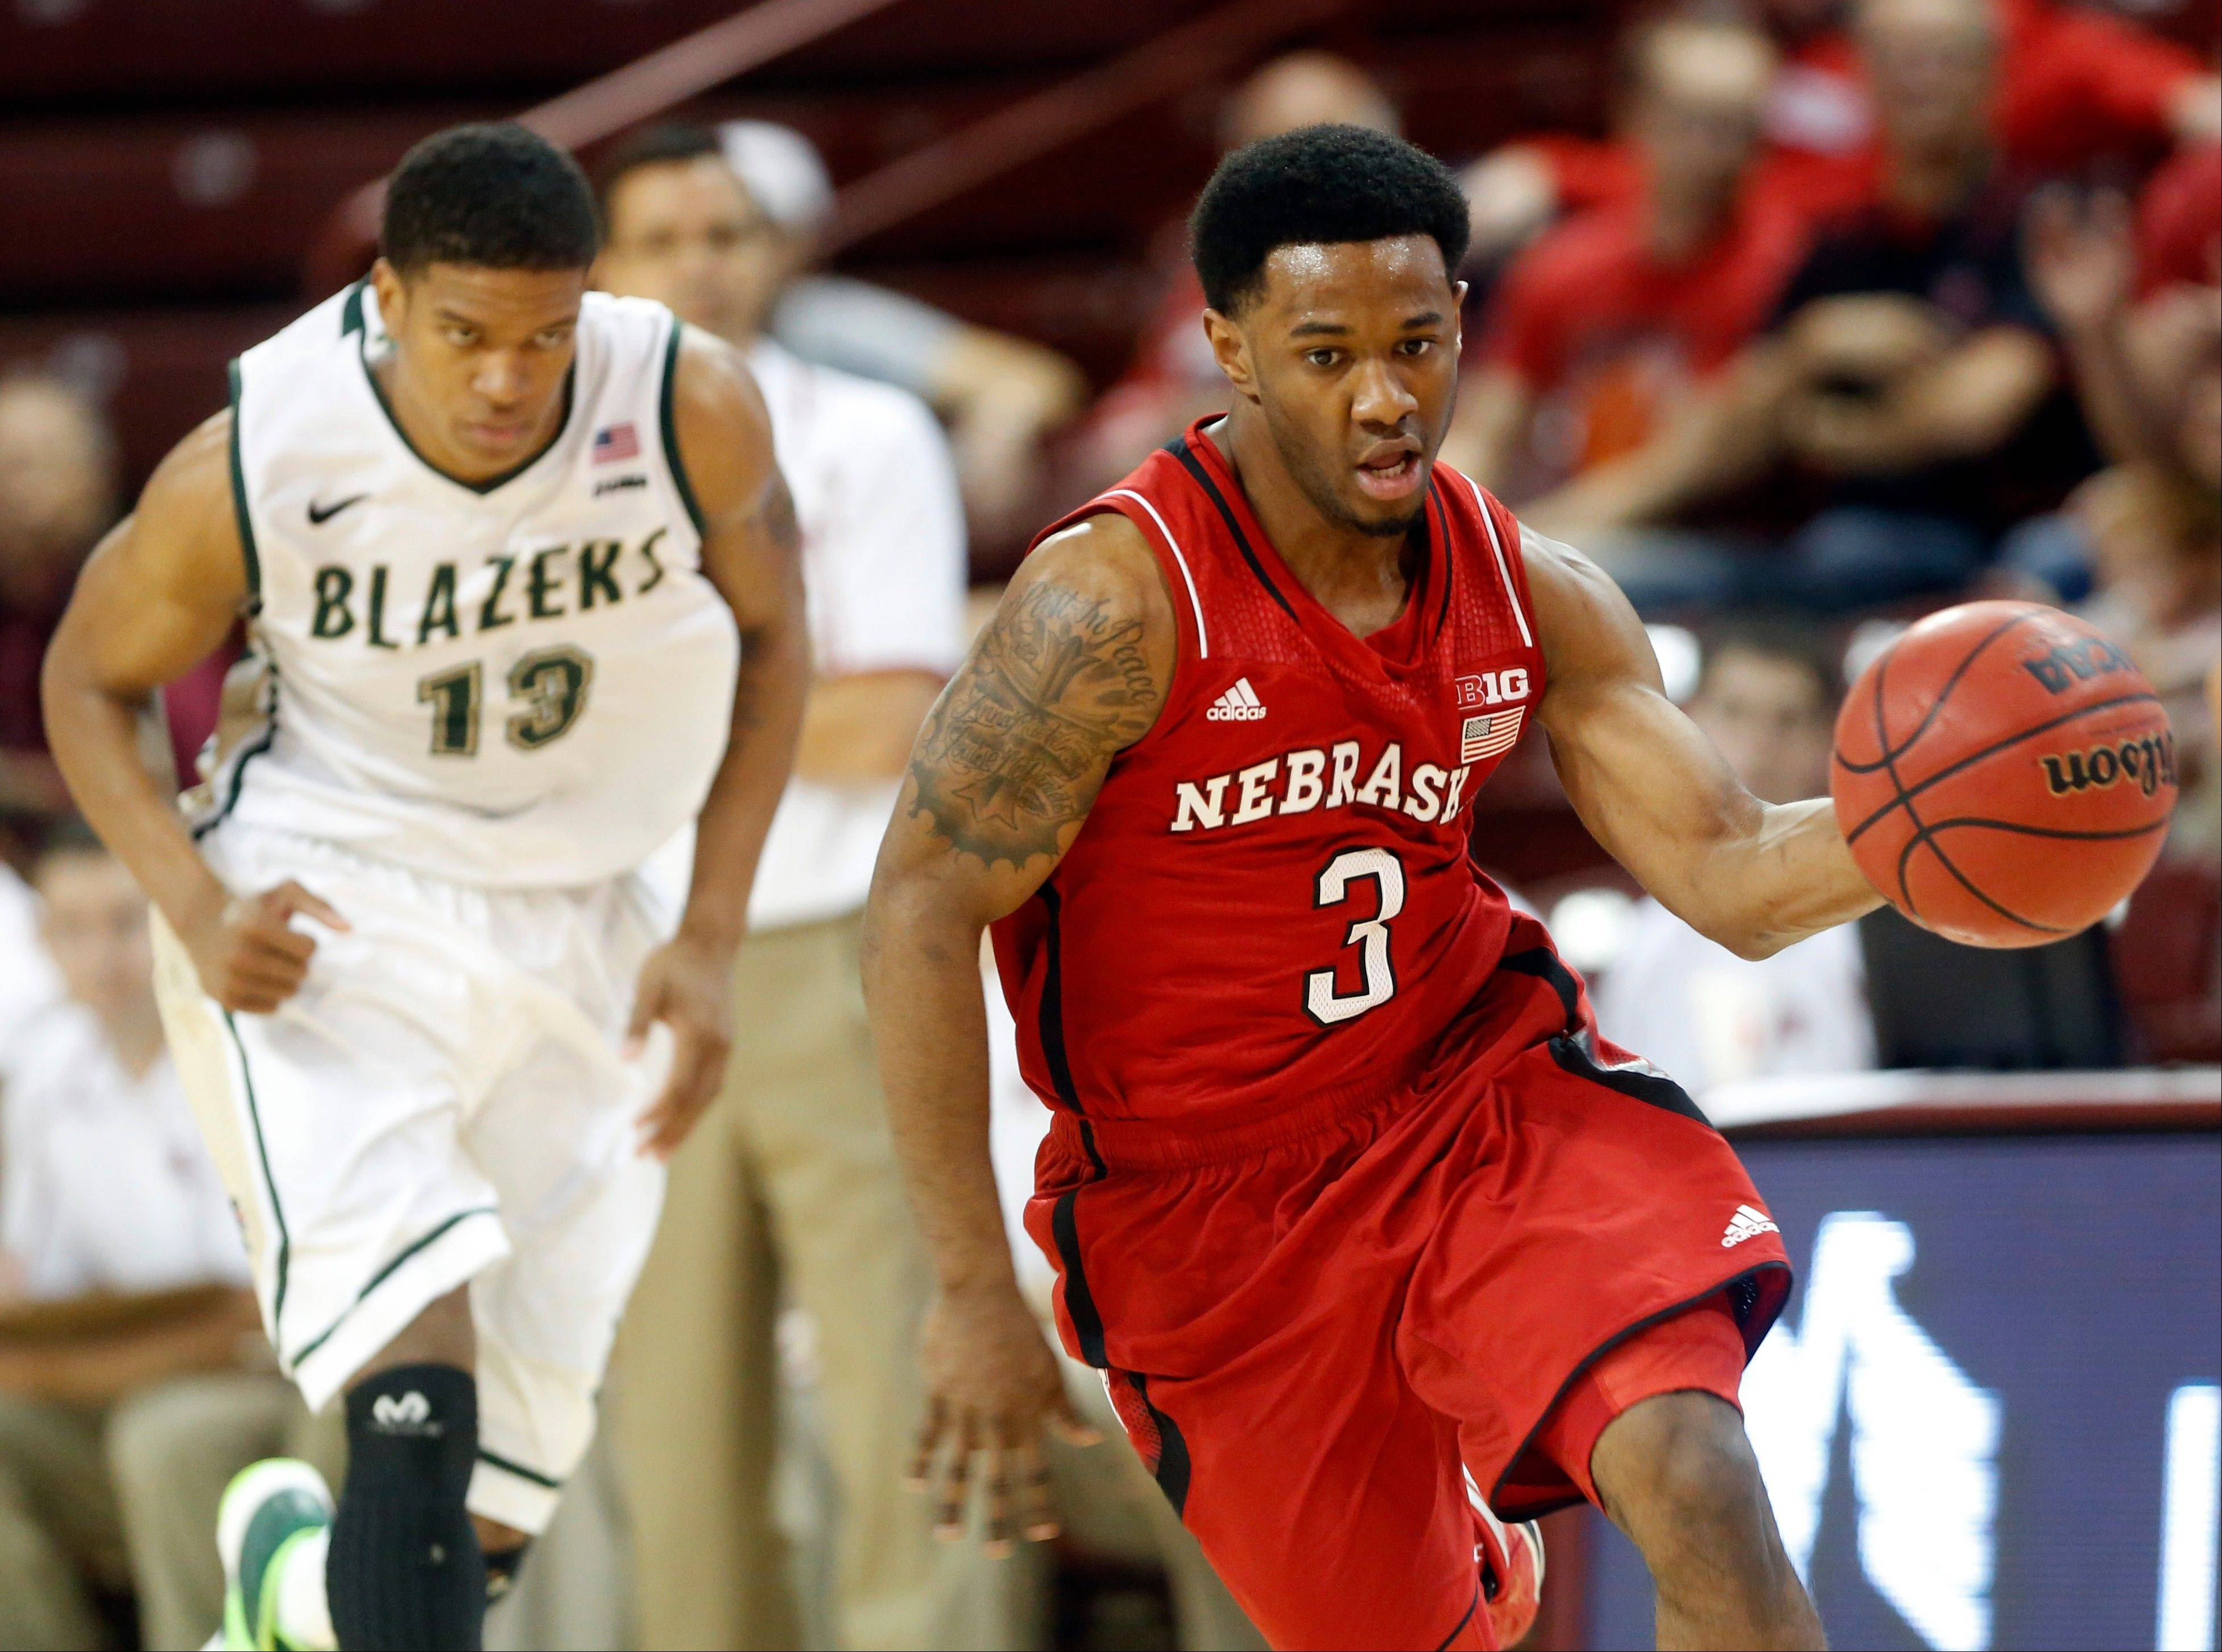 Nebraska's Benny Parker drives the ball up the court against UAB's Chad Frazier in the first half Friday at the Charleston Classic tournament in Charleston, S.C..